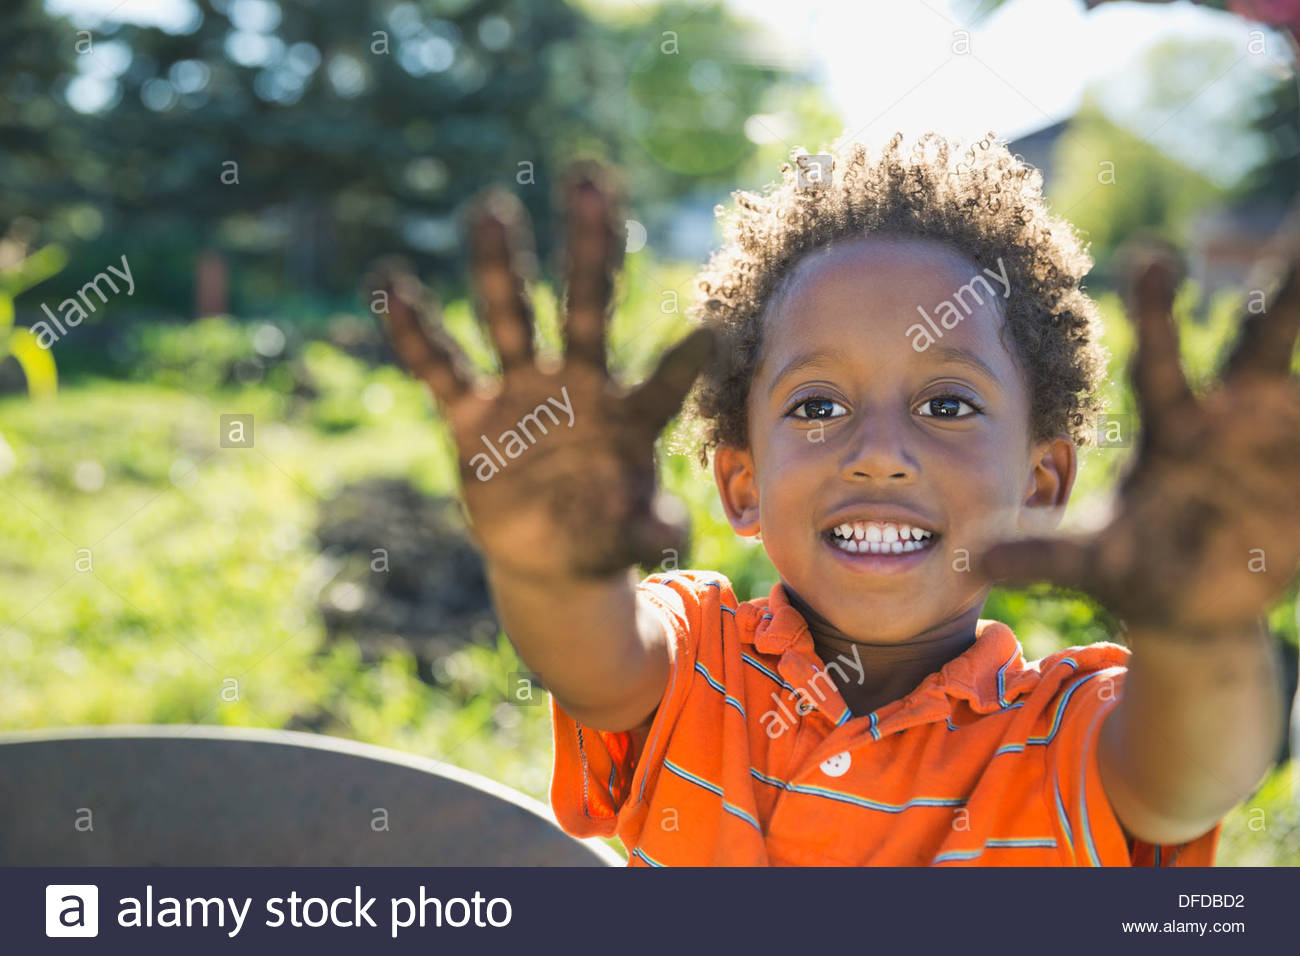 Cute boy showing hands covered in garden dirt - Stock Image